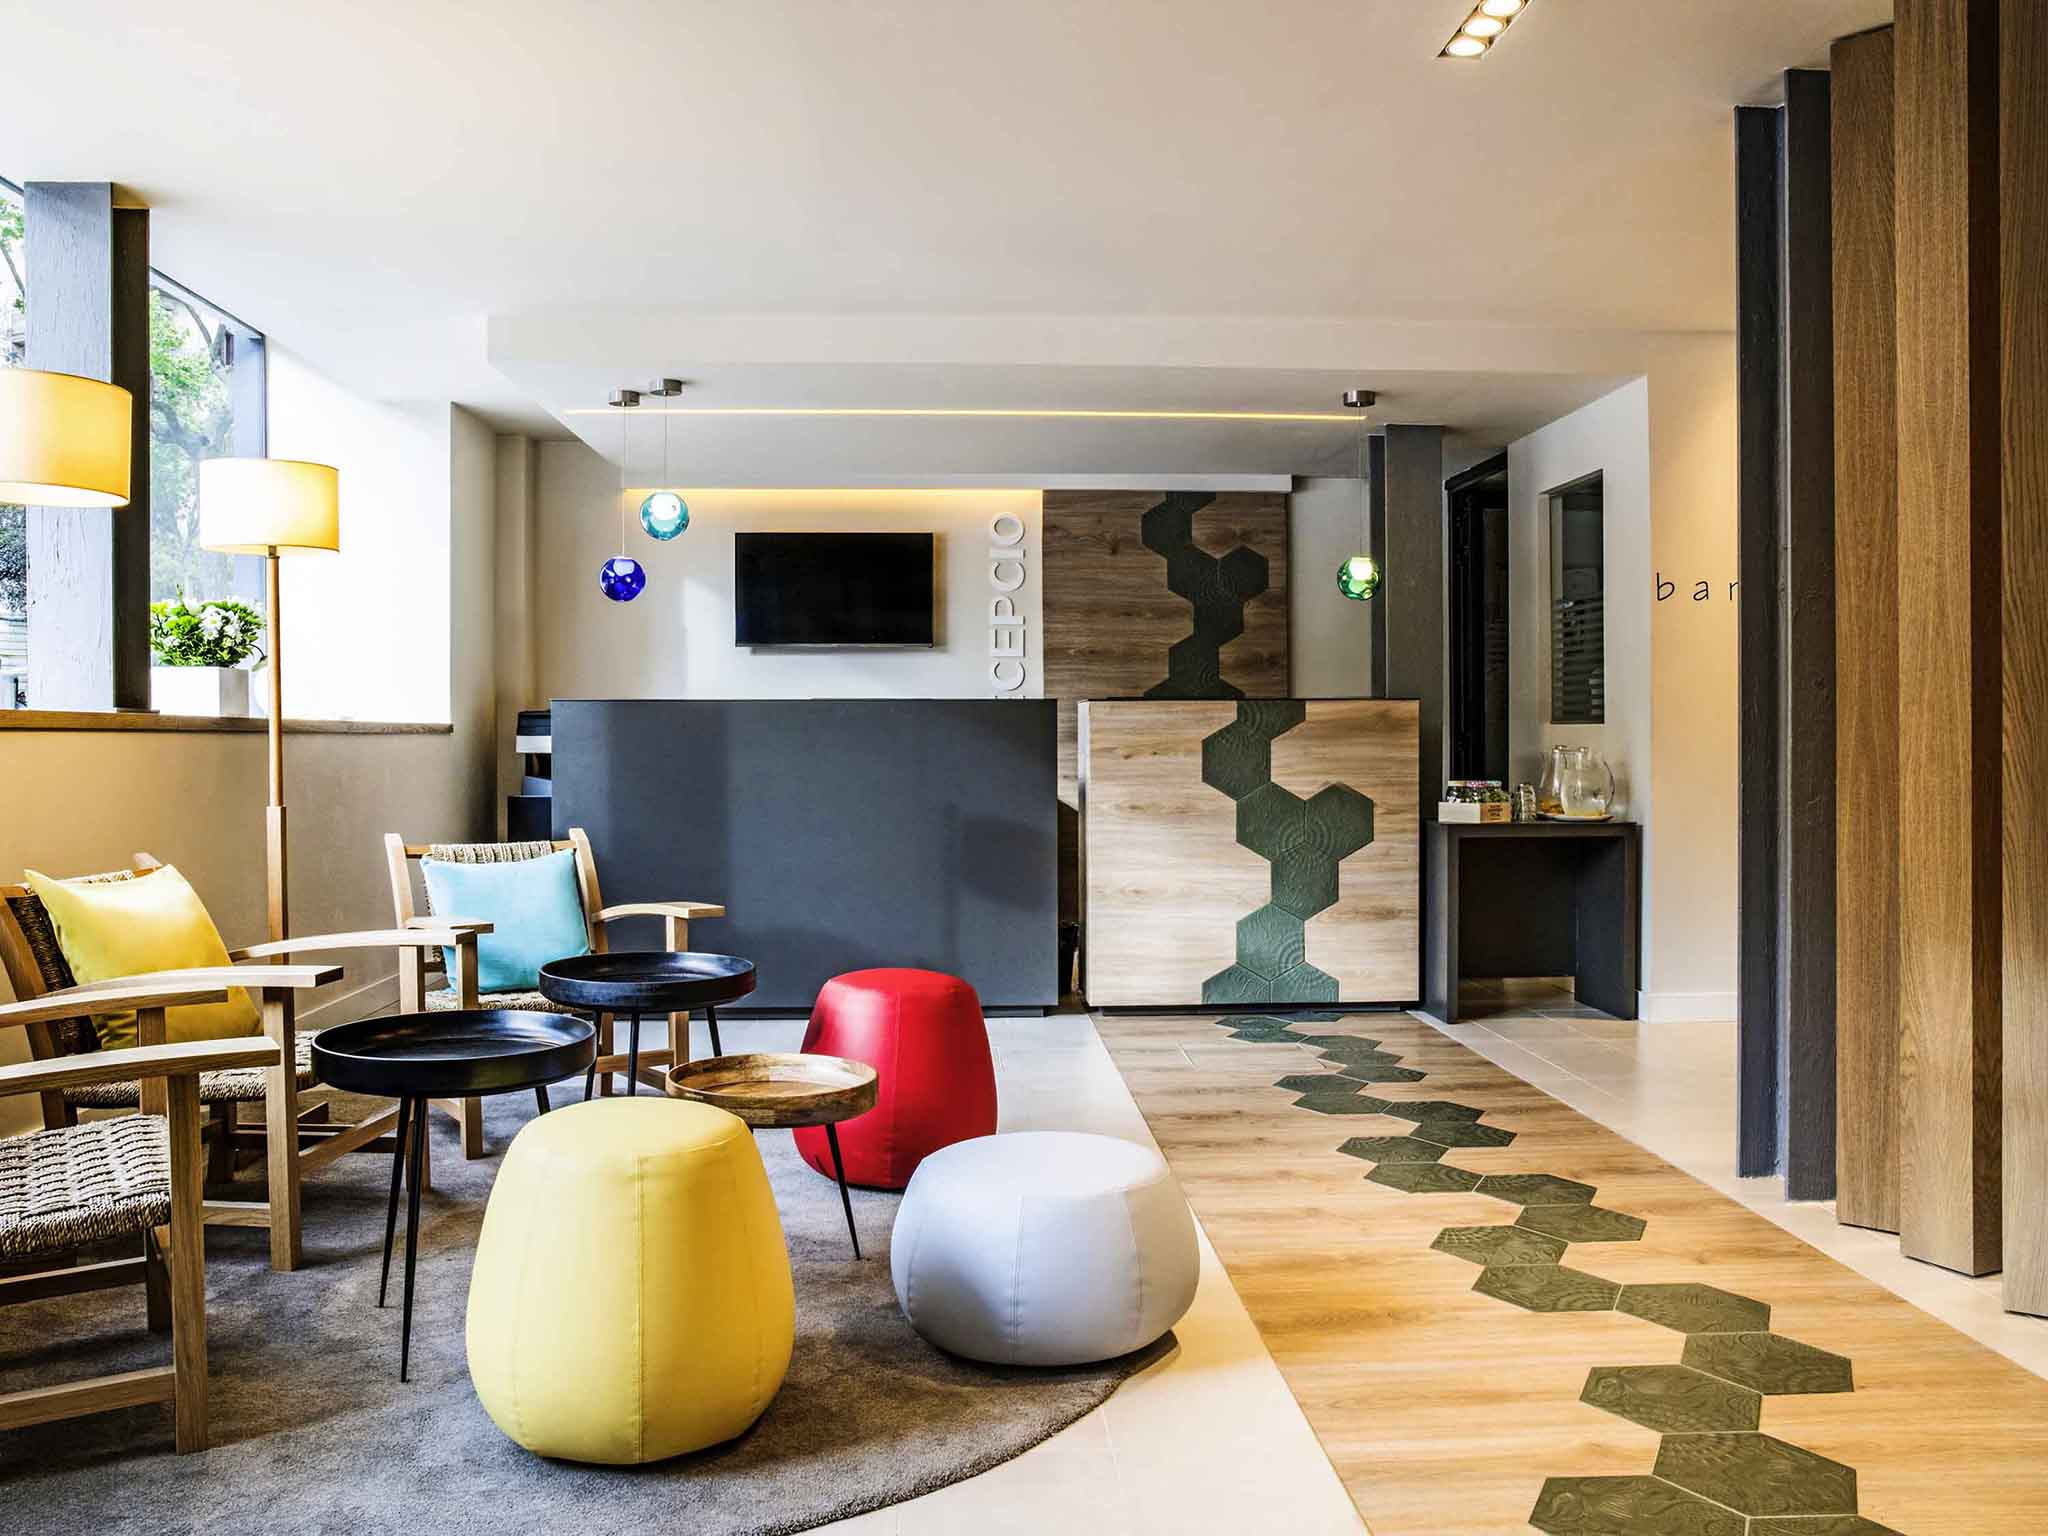 Hotel – ibis Styles Barcelona Centre